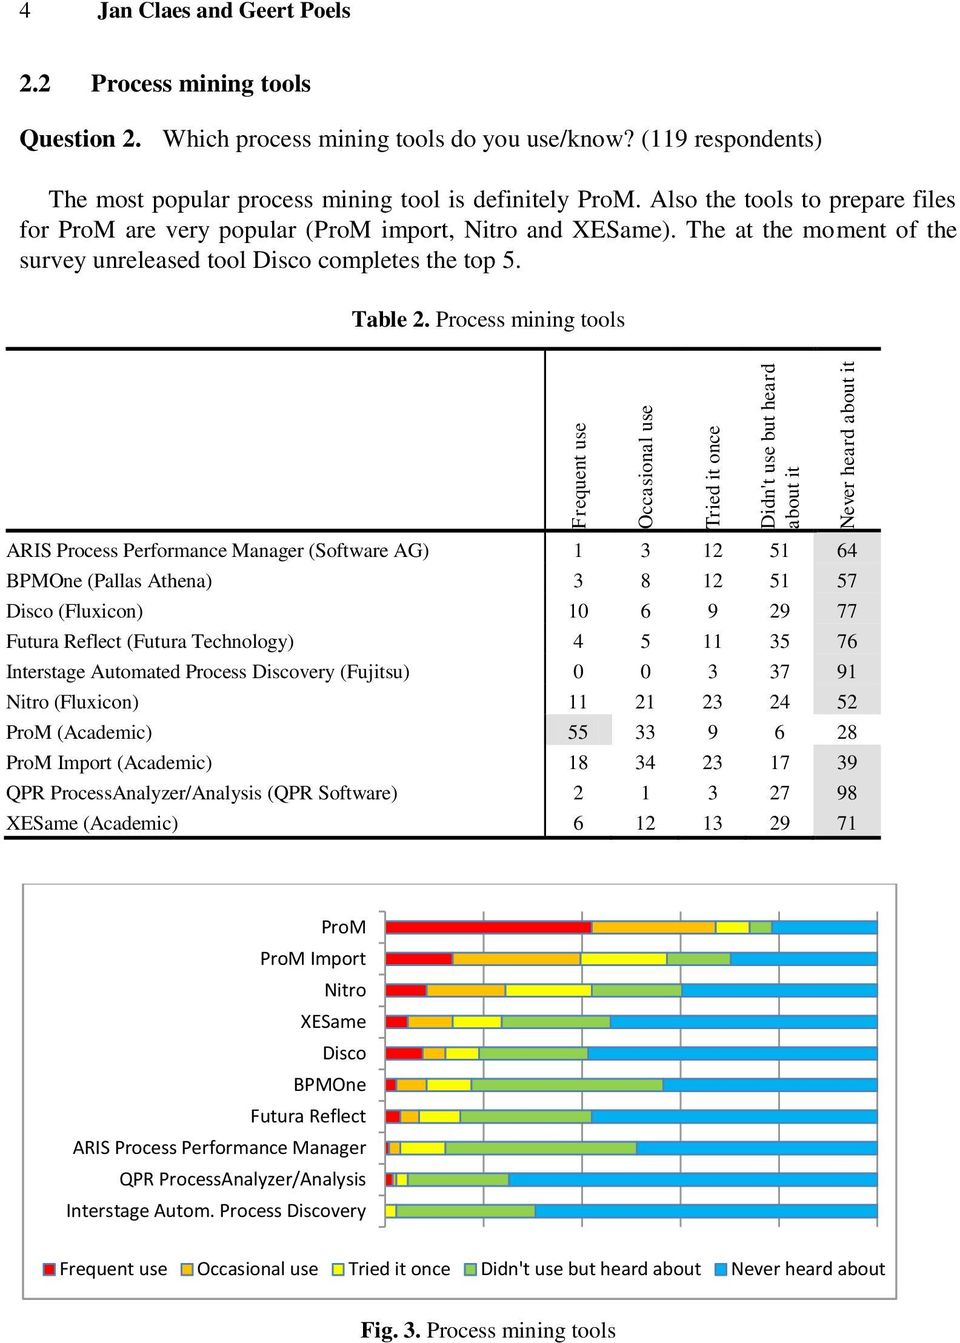 Process Mining and and and the ProM Framework: An Exploratory Survey 695f3d